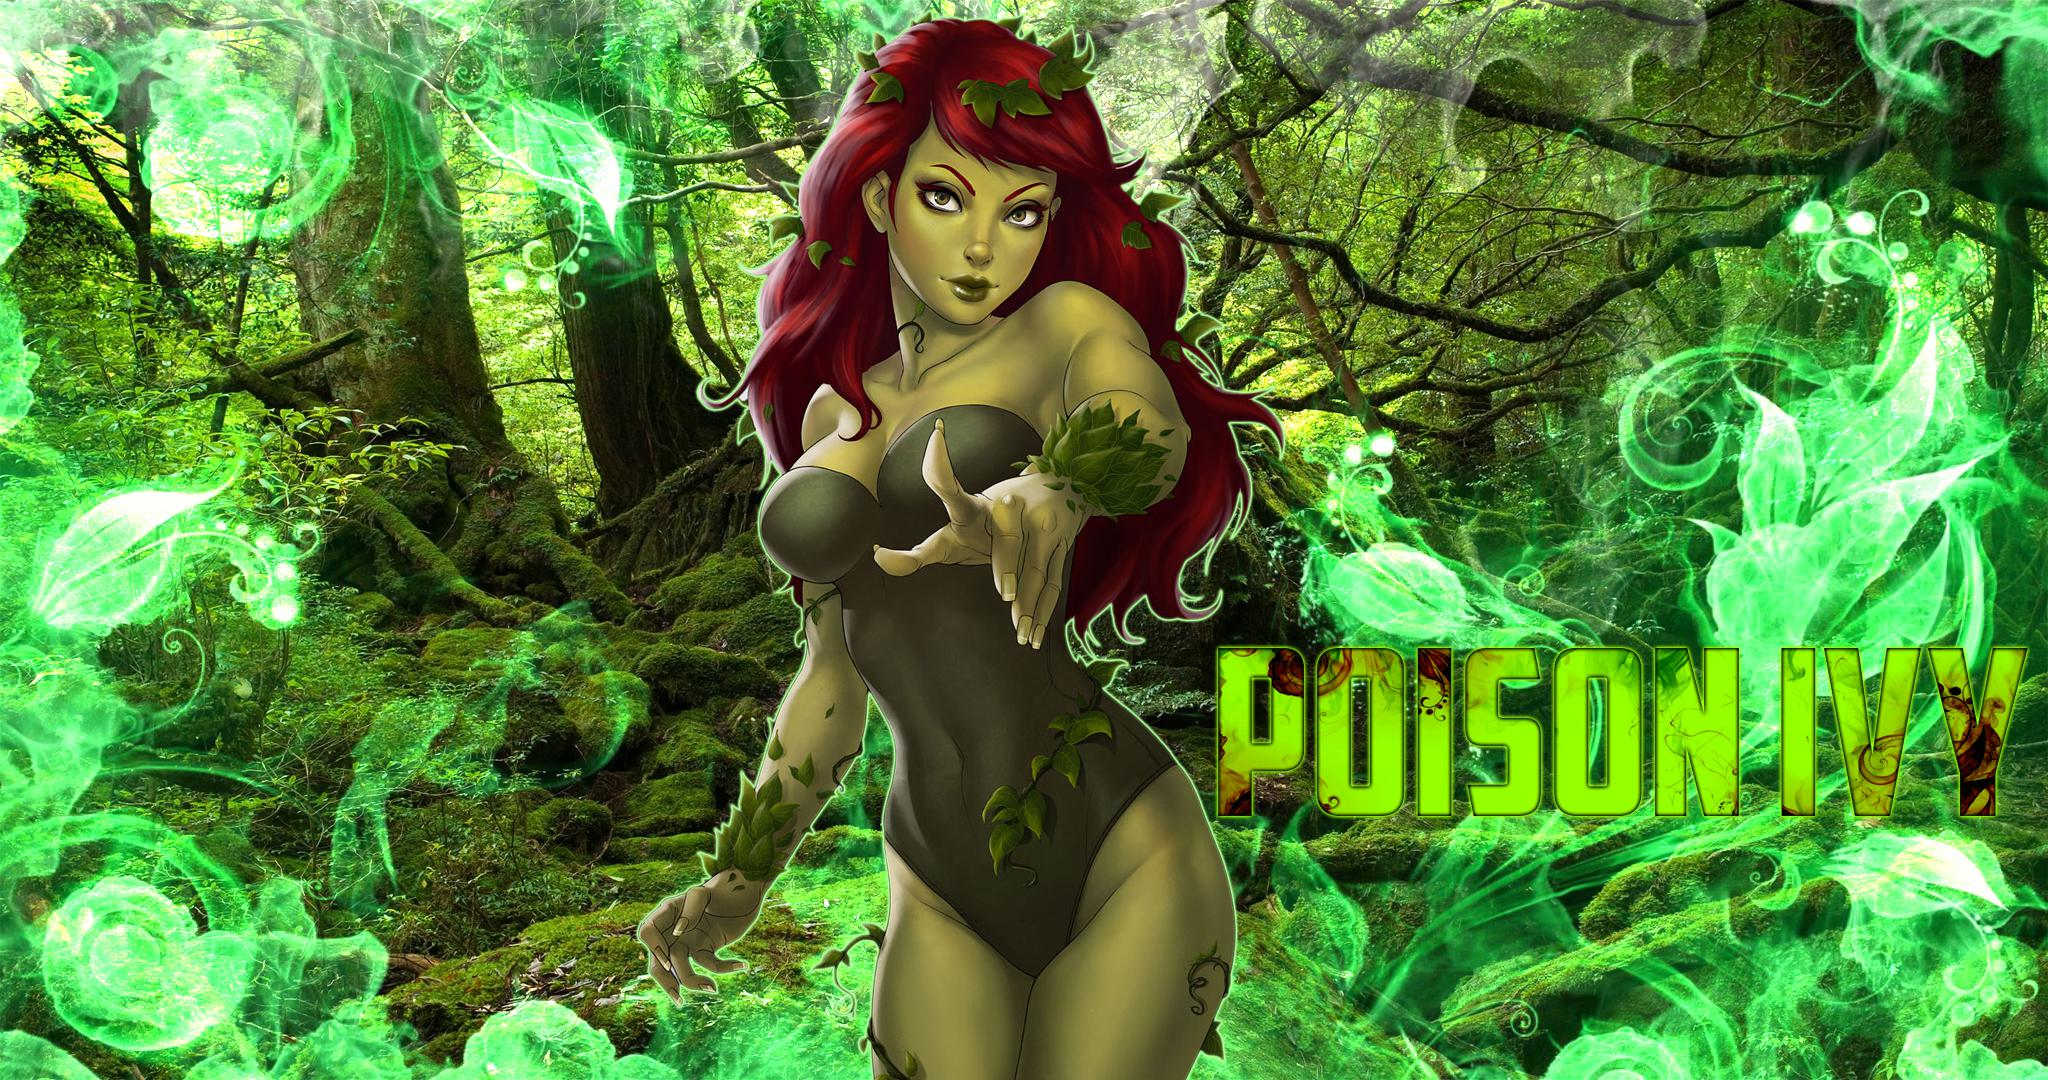 Poison Ivy Wallpapers Wsg125 | WallangSangit